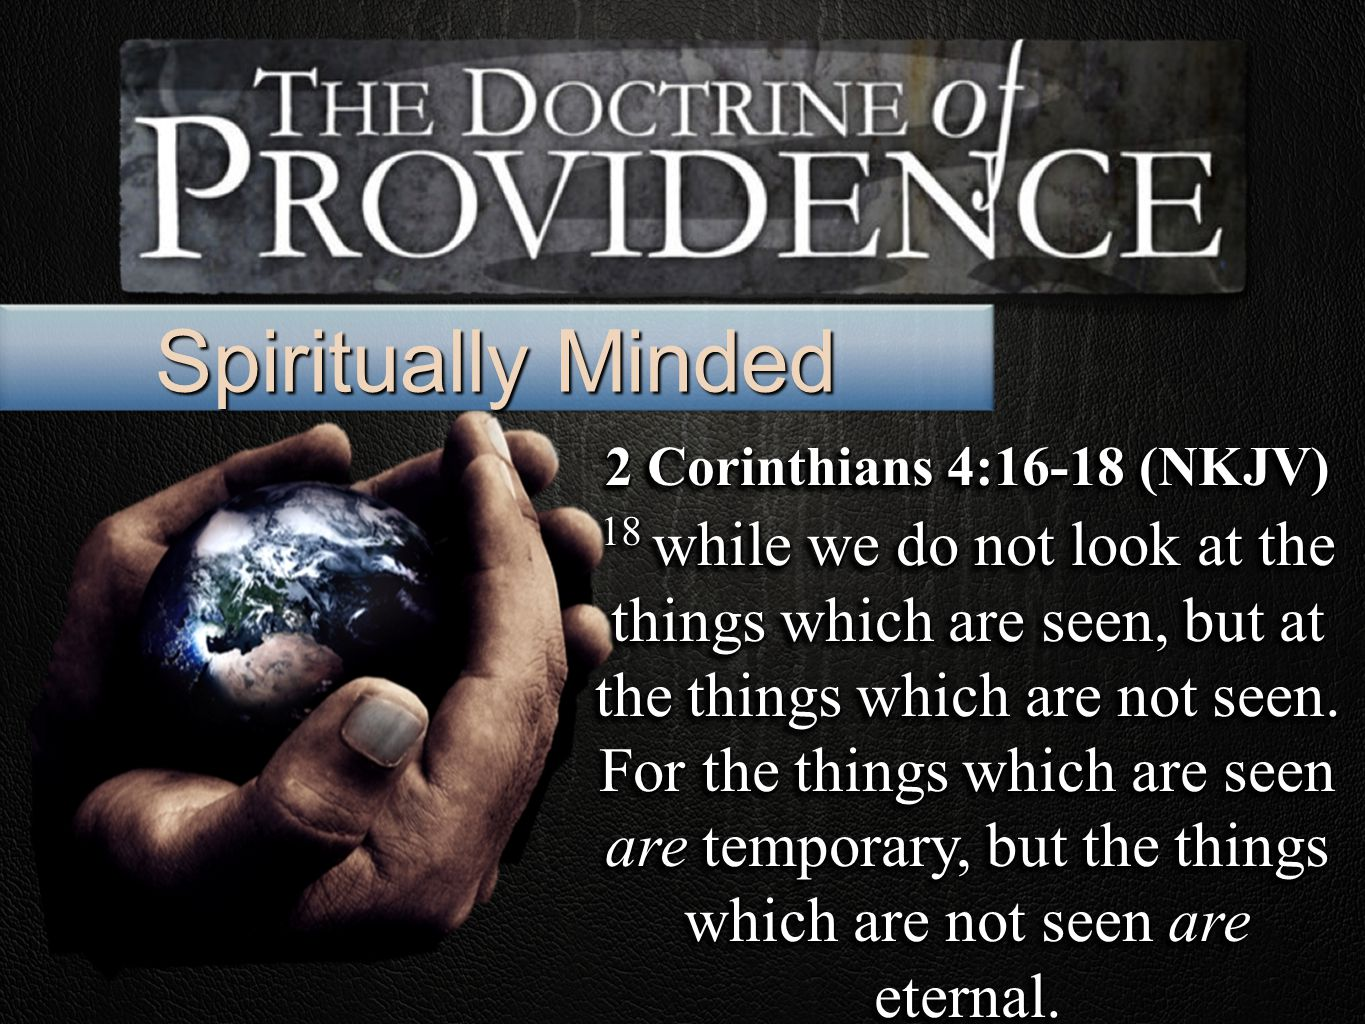 2 Corinthians 4:16-18 (NKJV) 18 while we do not look at the things which are seen, but at the things which are not seen.